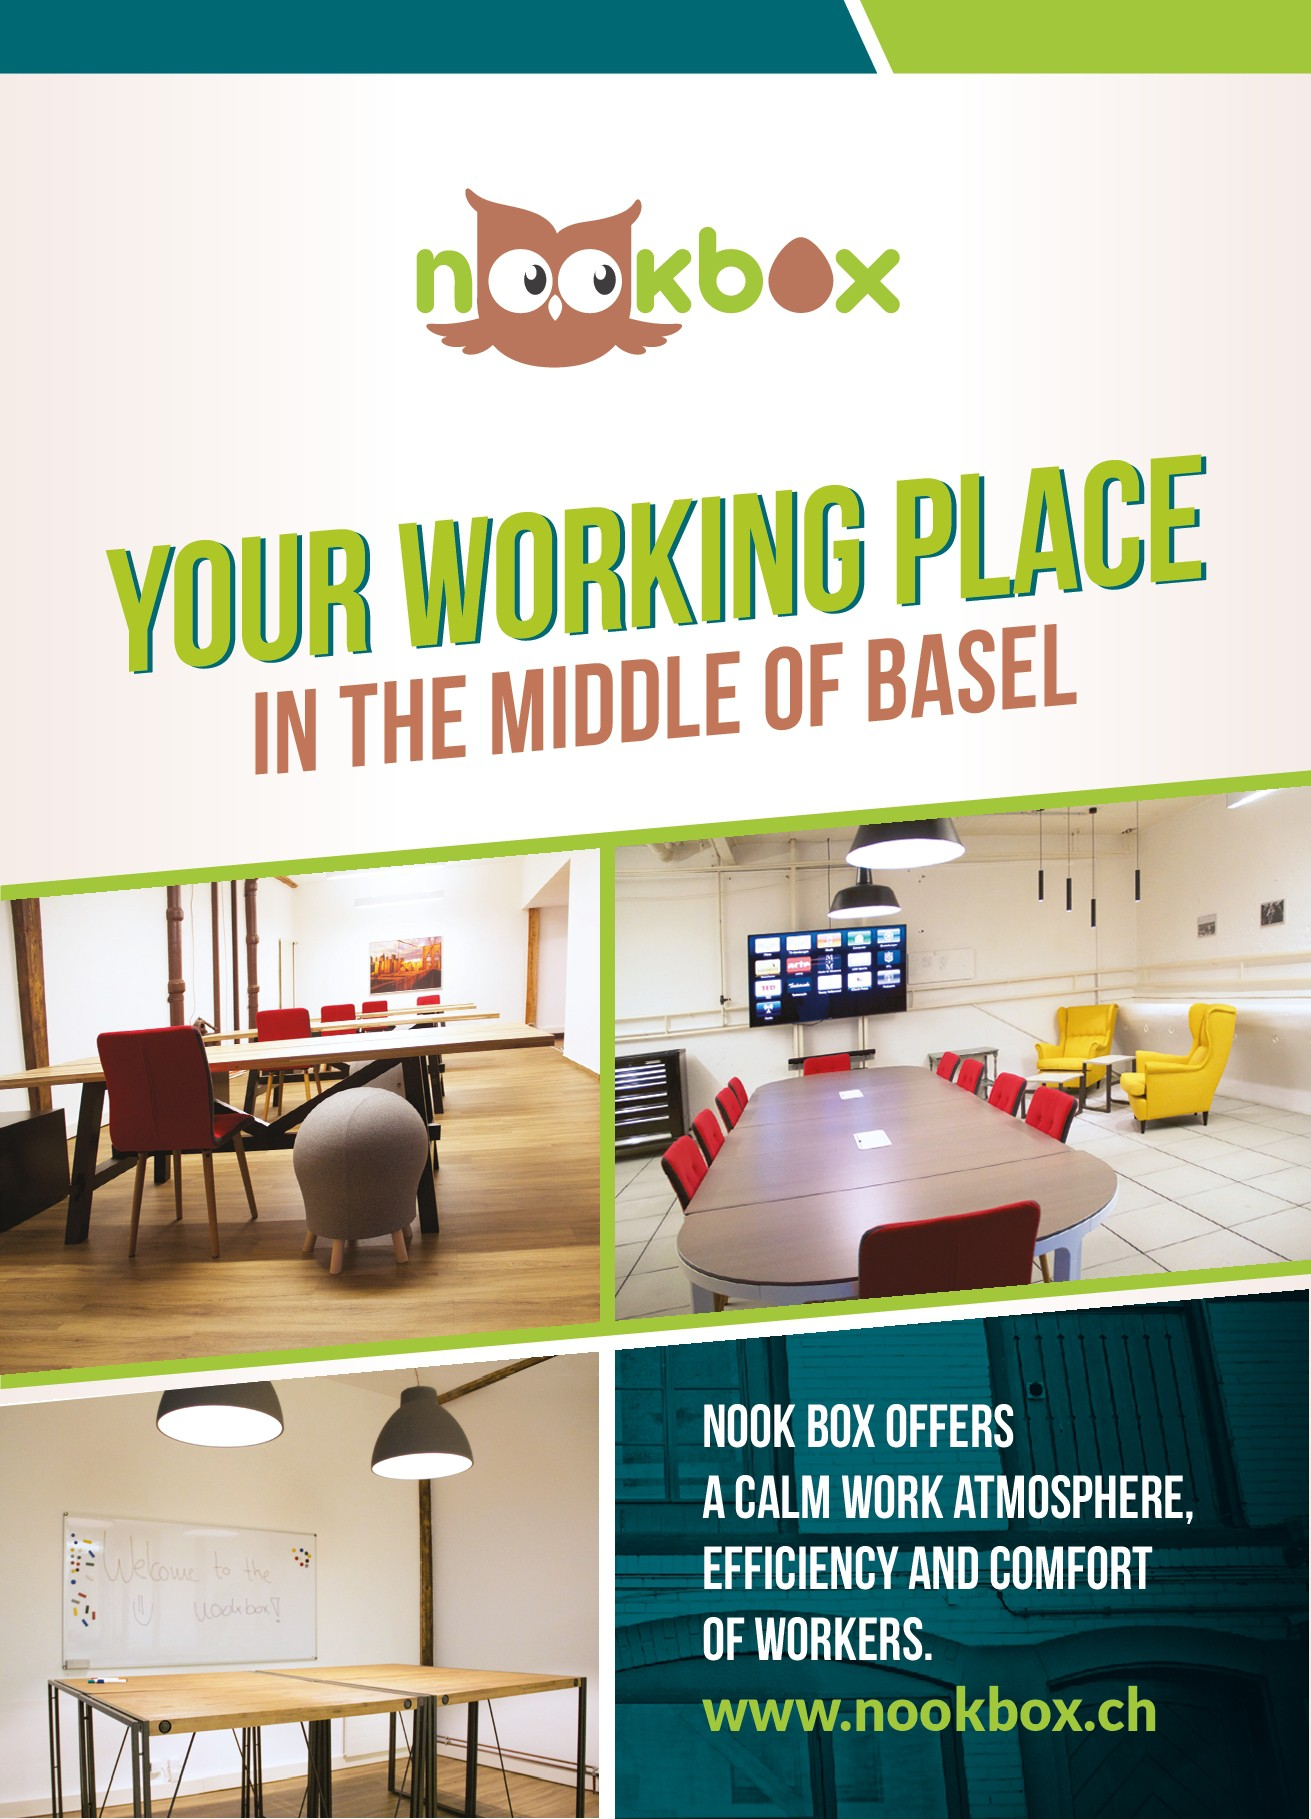 Create an attractive flyer advertising Nookbox/co-working space